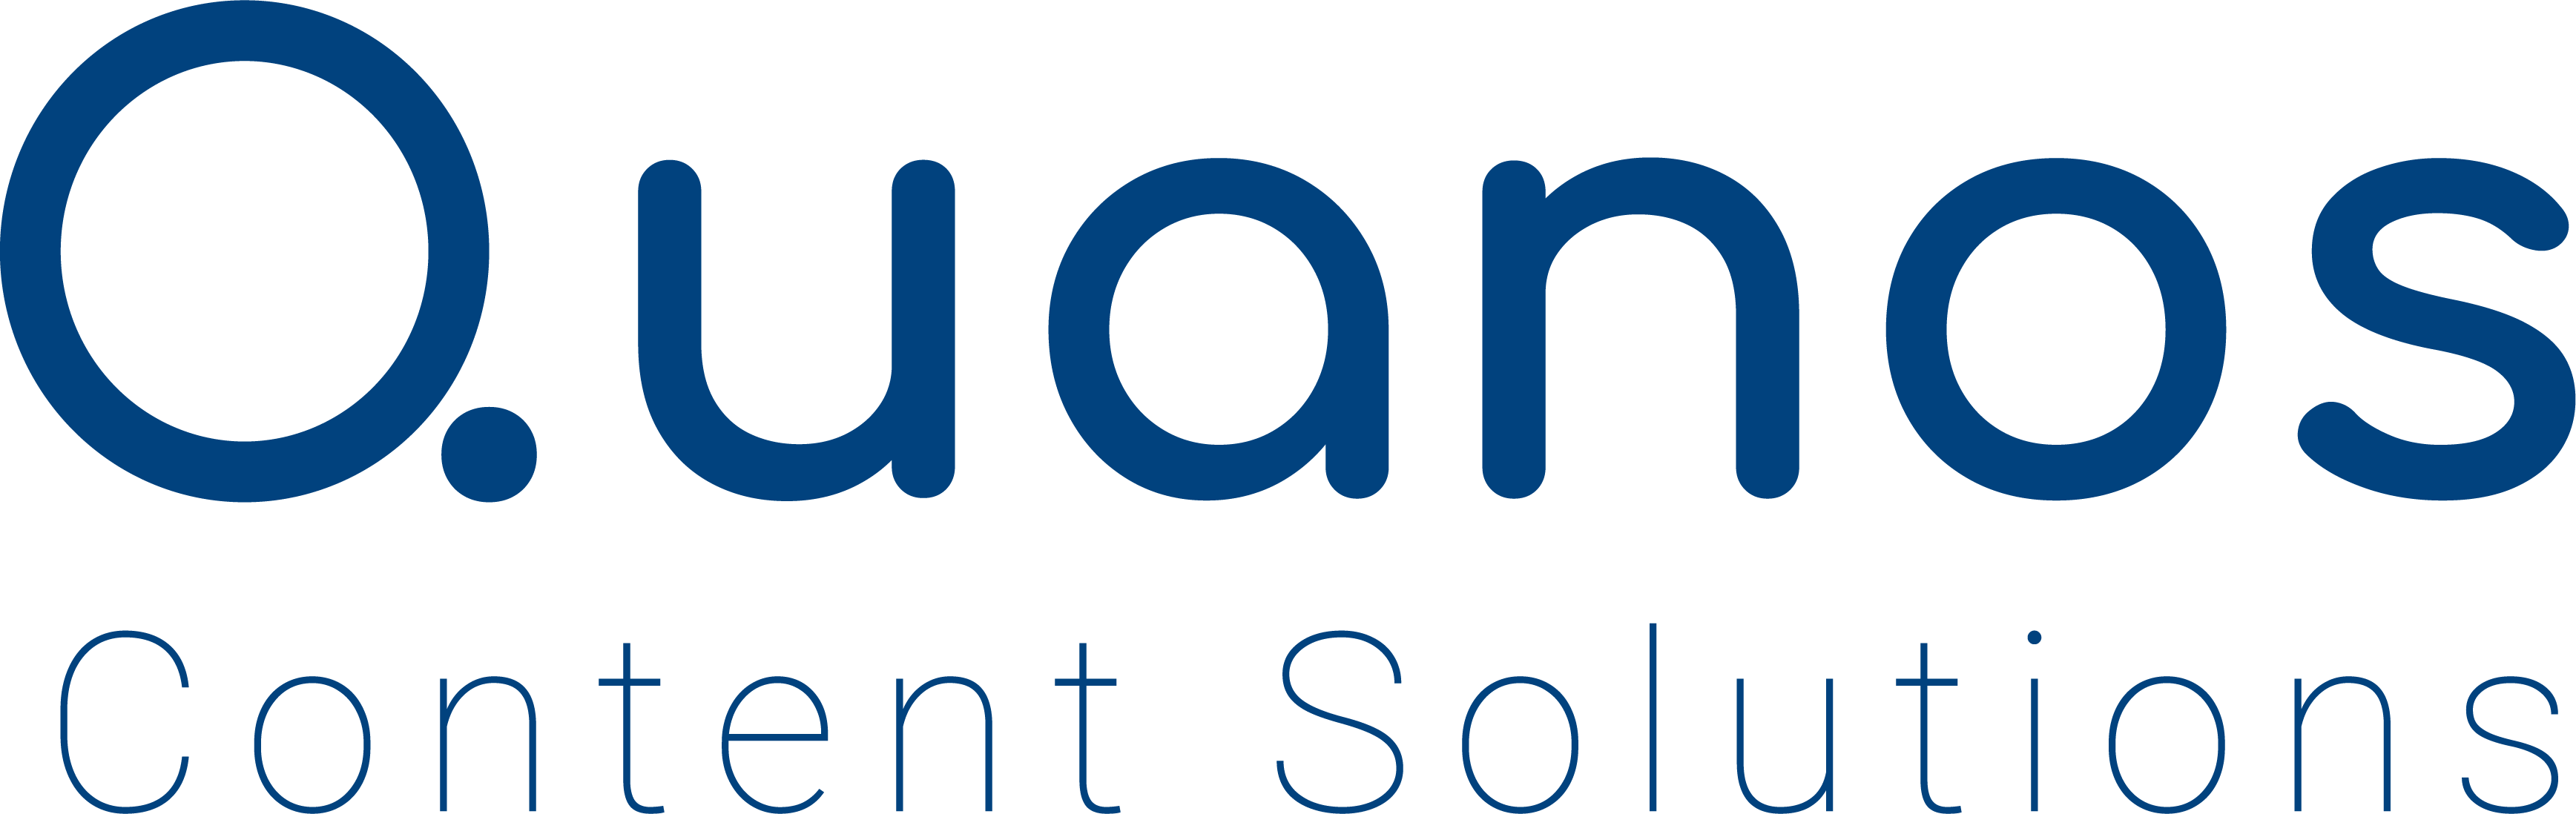 Softwareentwickler .NET/C# (m/w/d) - Job Nürnberg - Arbeiten bei Quanos Content Solutions - Application form